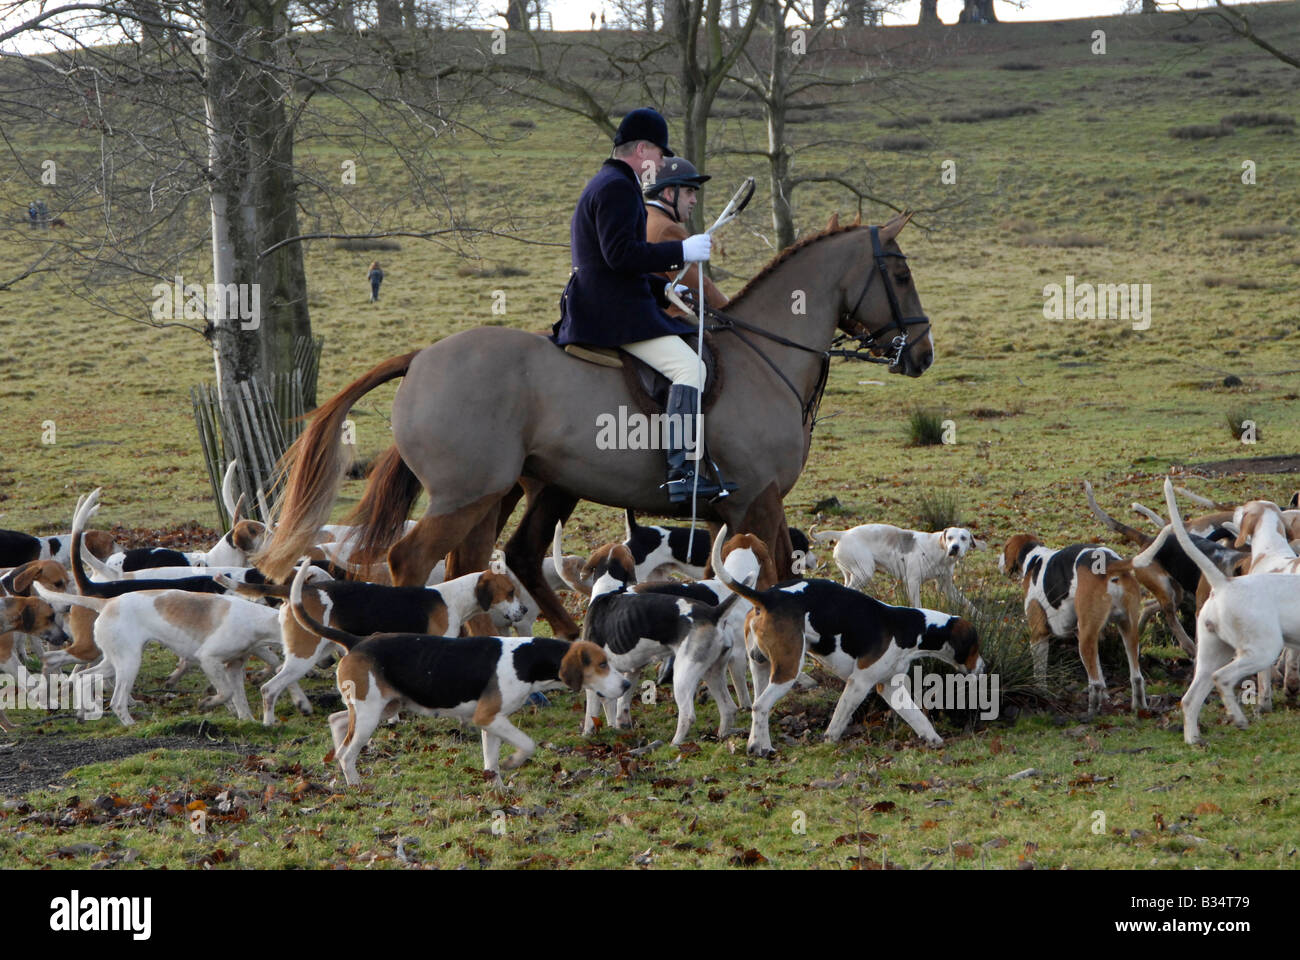 Huntsmen and hounds - Boxing Day Hunt, Petworth, Surrey, England - Stock Image